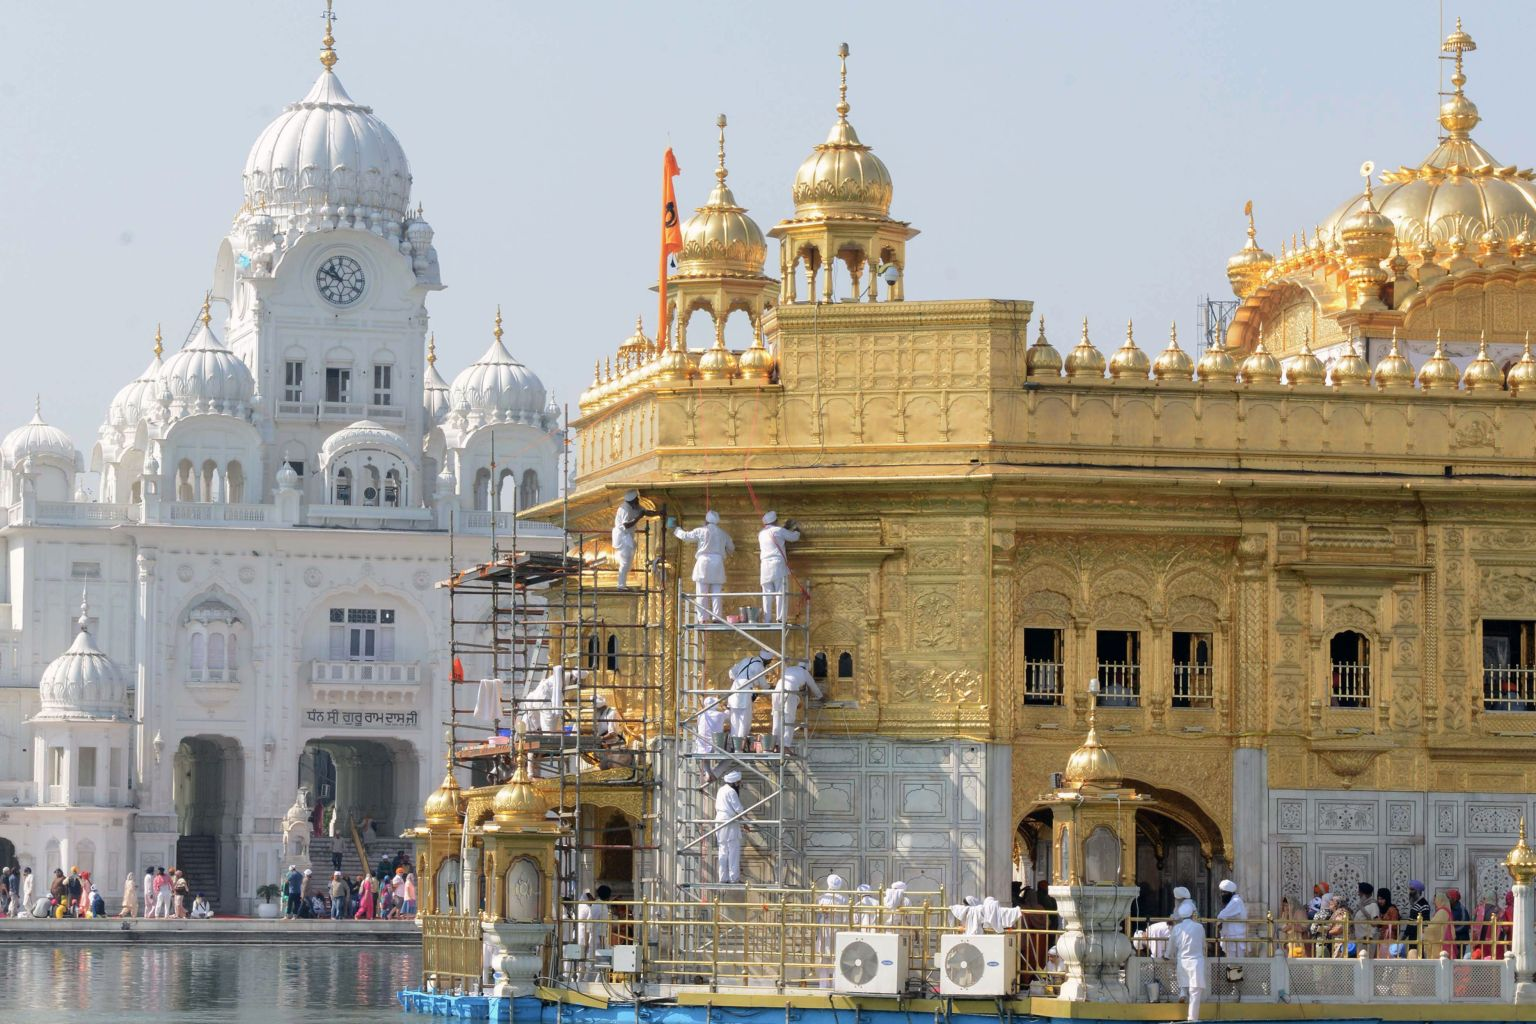 TOPSHOT - Volunteers from Birmingham's Guru Nanak Nishkam Sewak Jatha in Britain clean the gold plating of the Golden Temple Sikh Shrine in Amritsar on March 8, 2018. / AFP PHOTO / NARINDER NANU        (Photo credit should read NARINDER NANU/AFP/Getty Images)